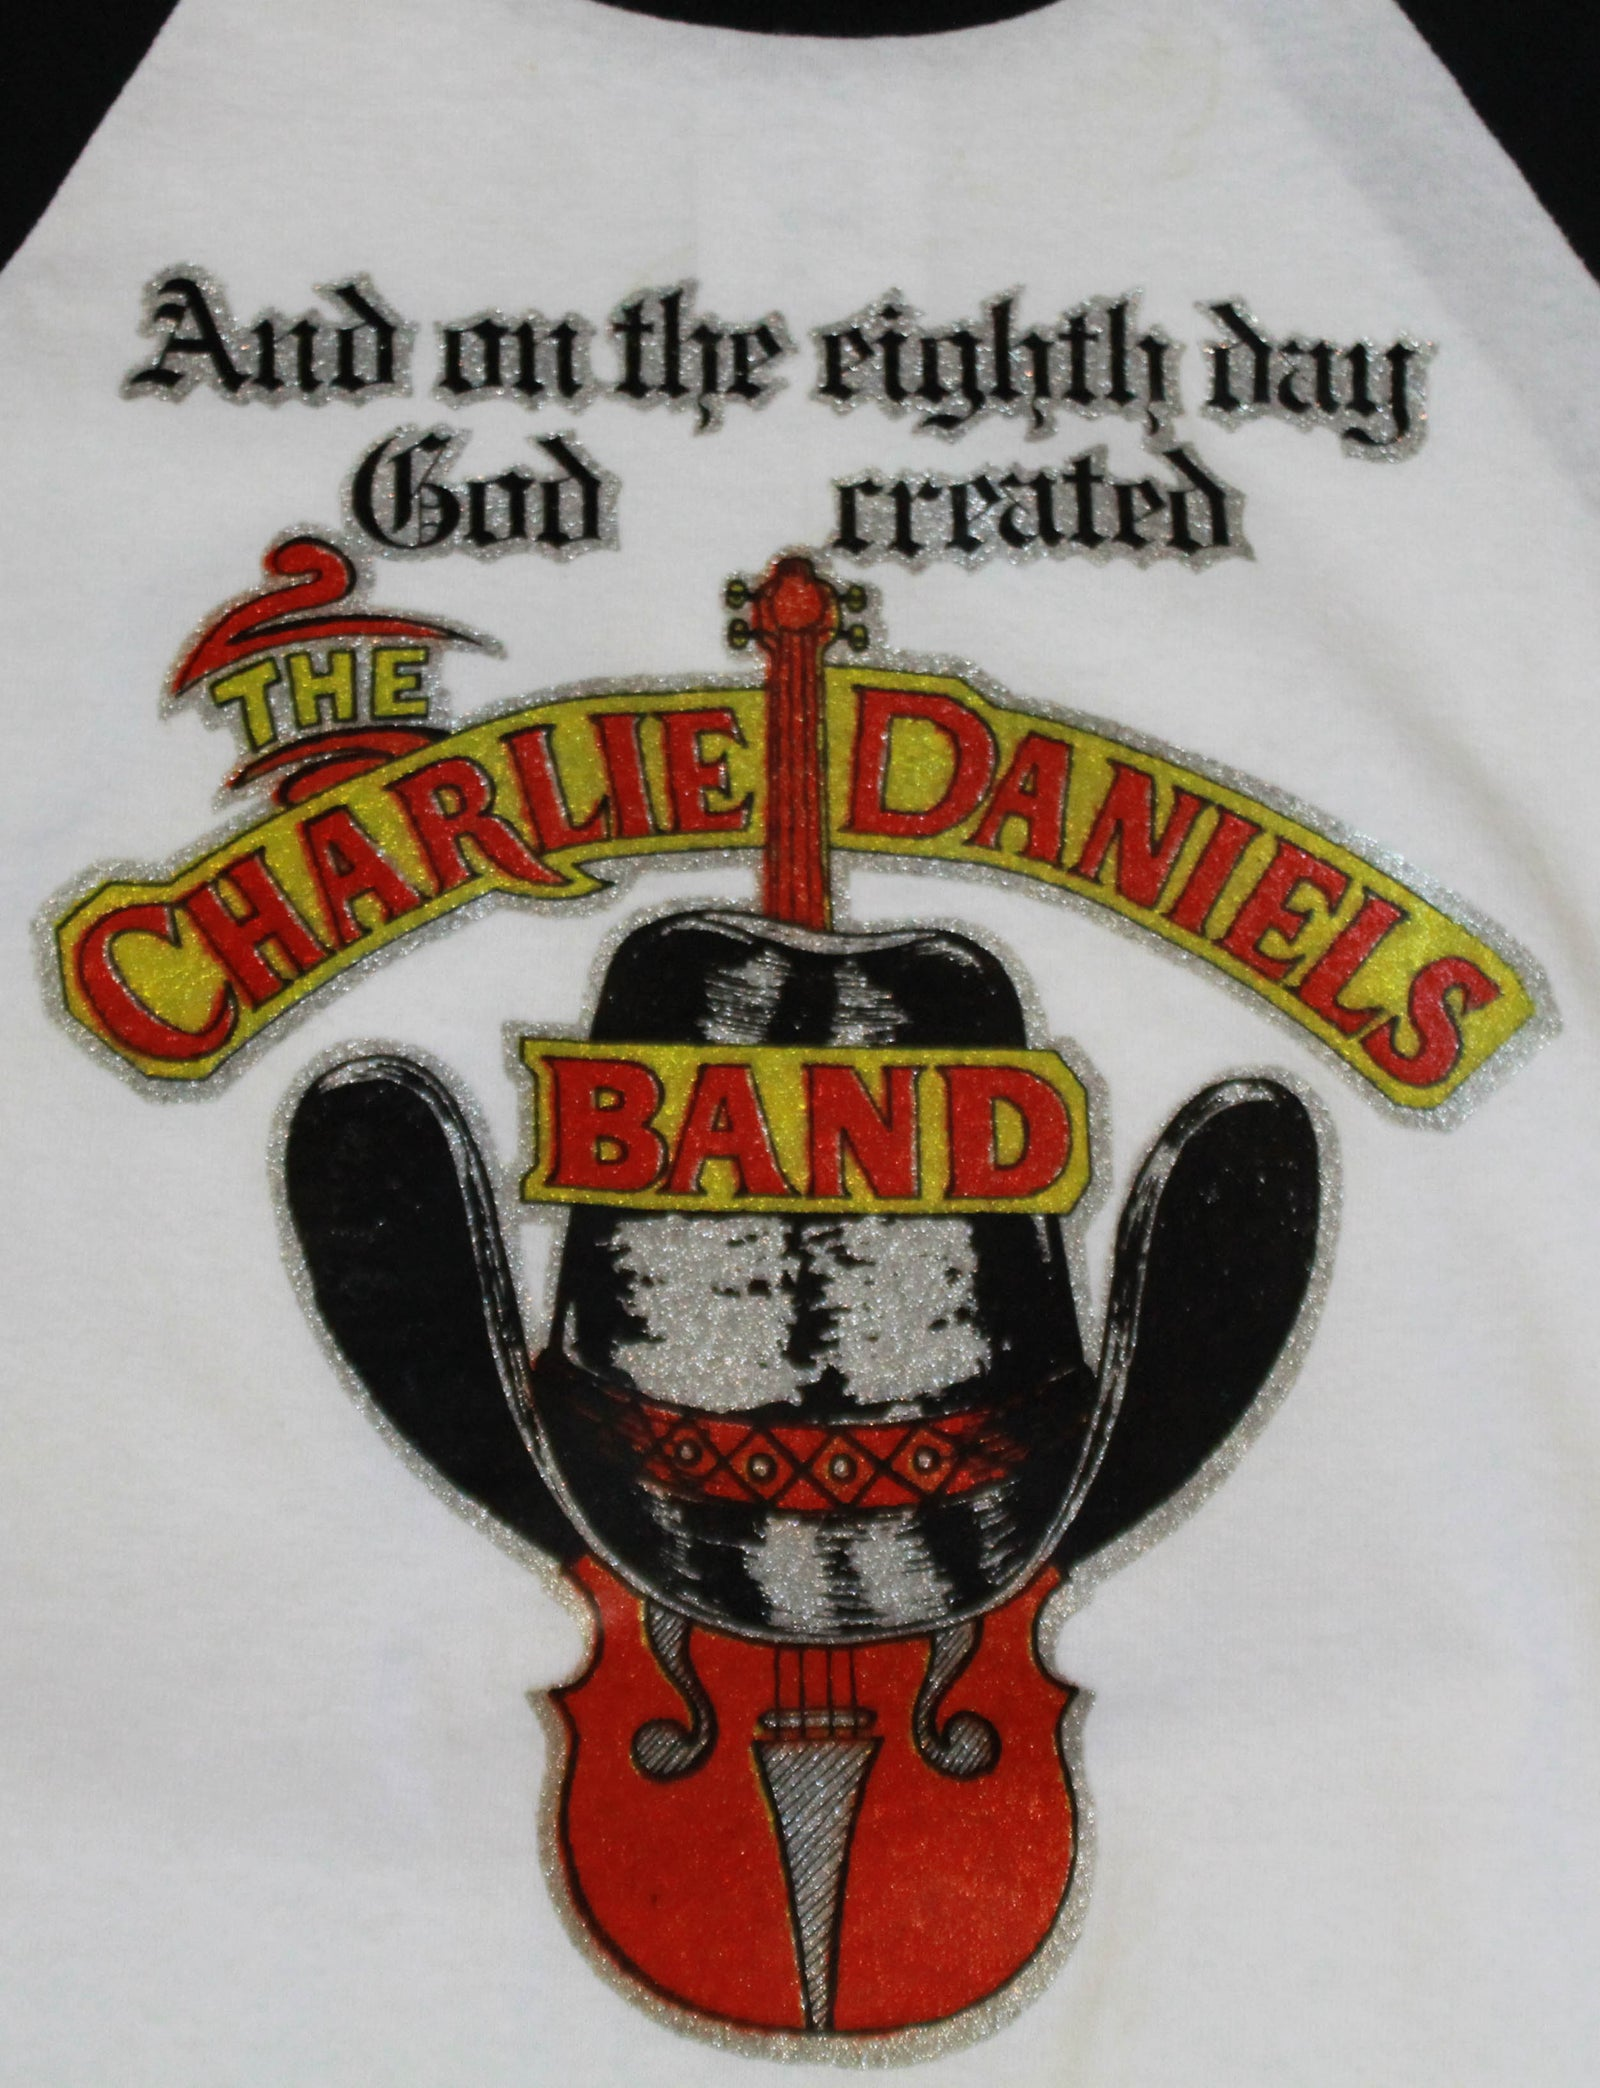 Vintage Charlie Daniels Band Concert T Shirt Iron-On Jersey Unisex Medium